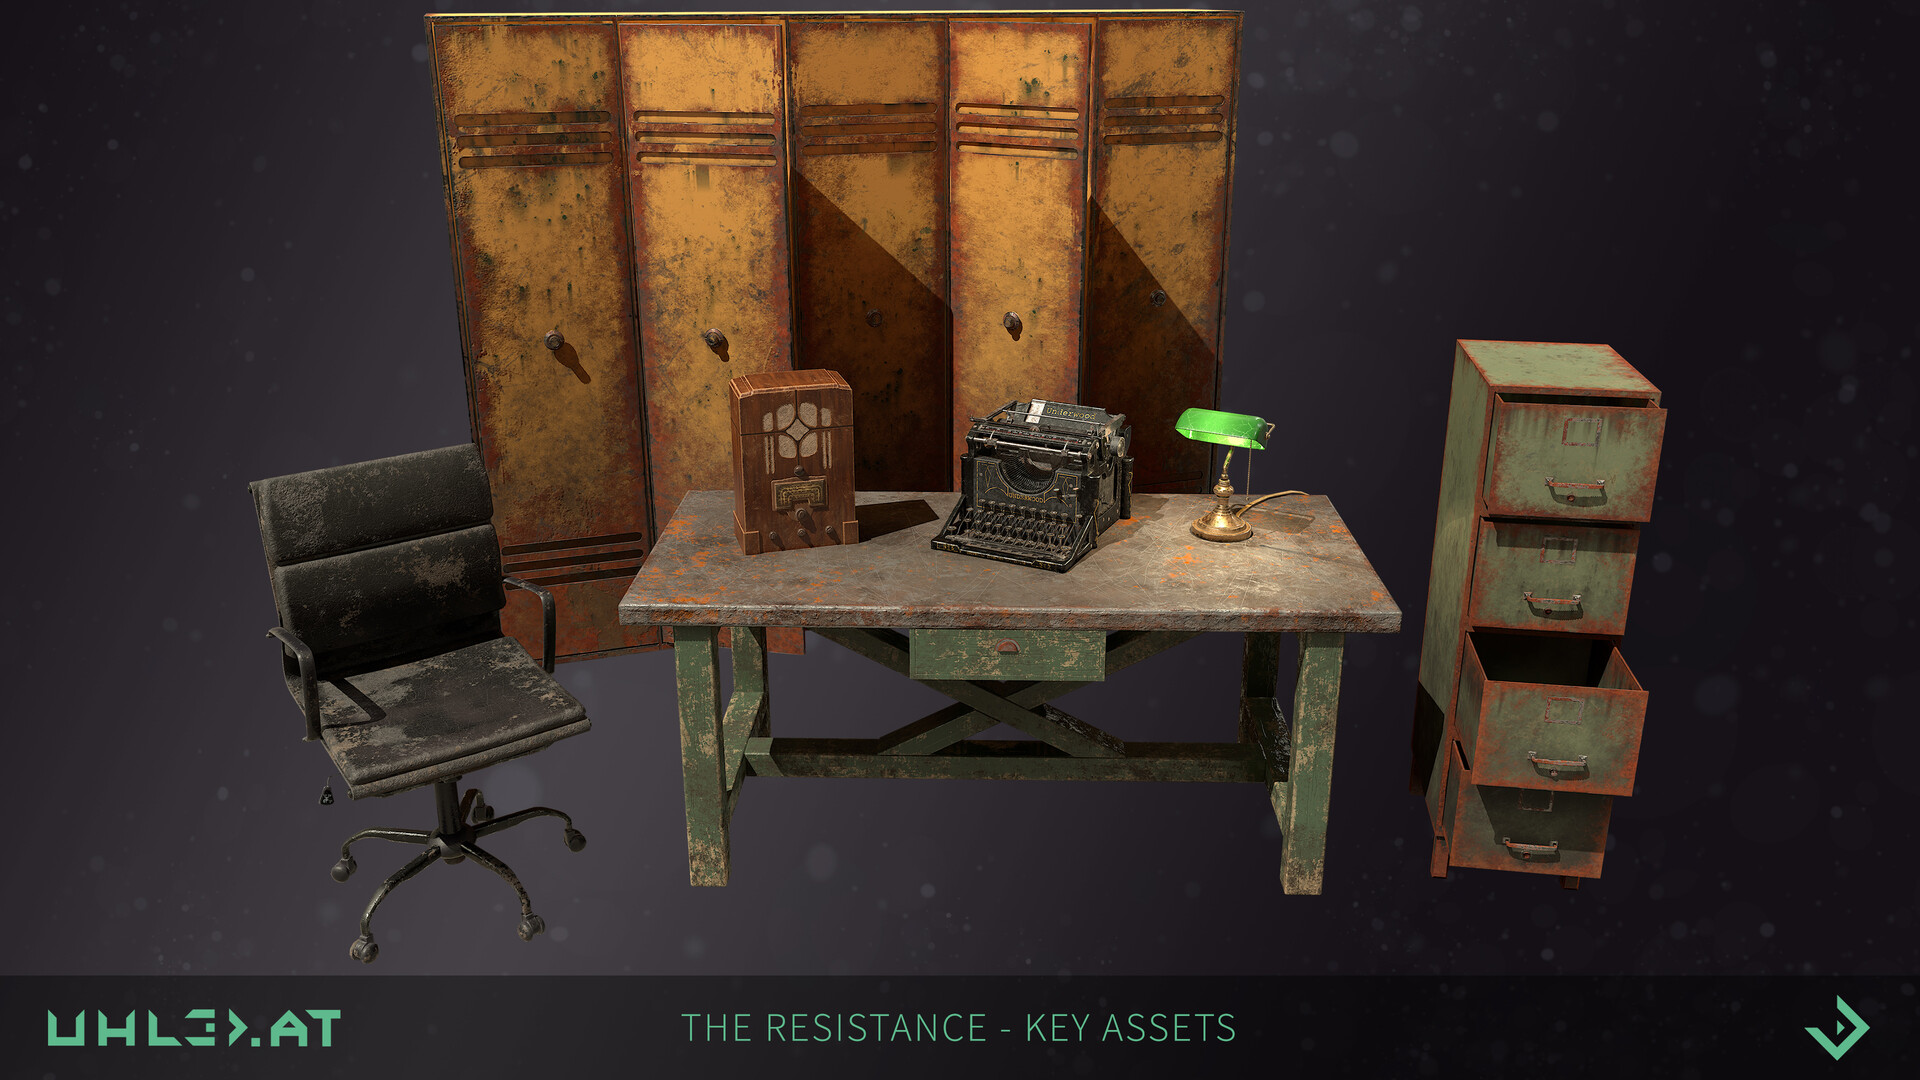 Dominik uhl the resistance key assets 01